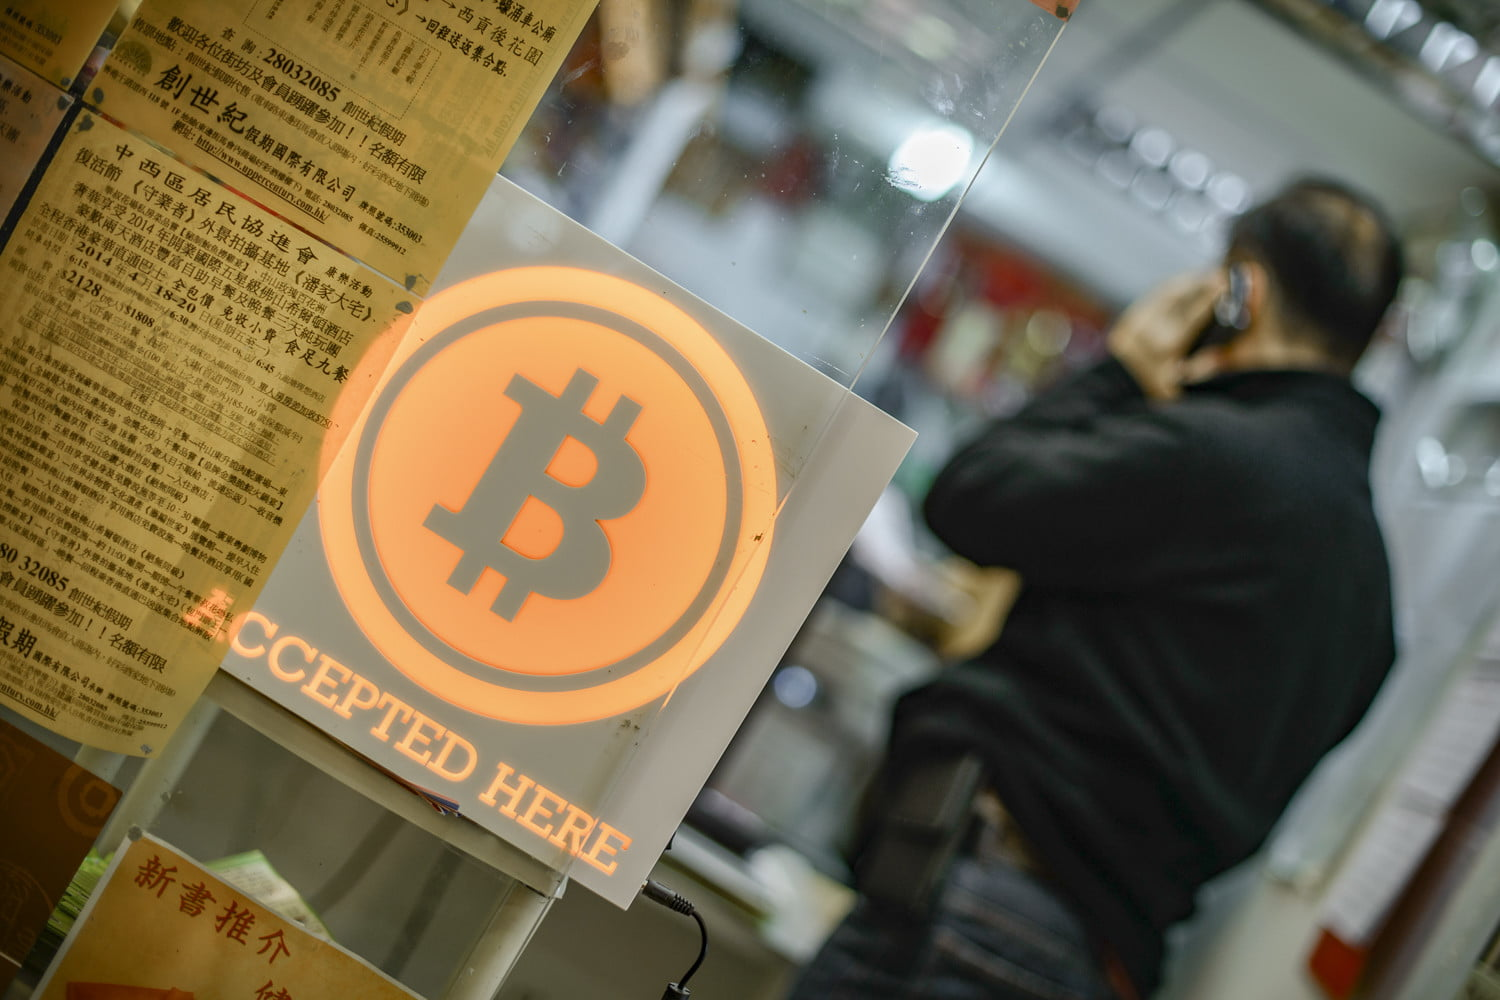 Is your browser mining bitcoin? 'Malvertisements' are hijacking Google Ads